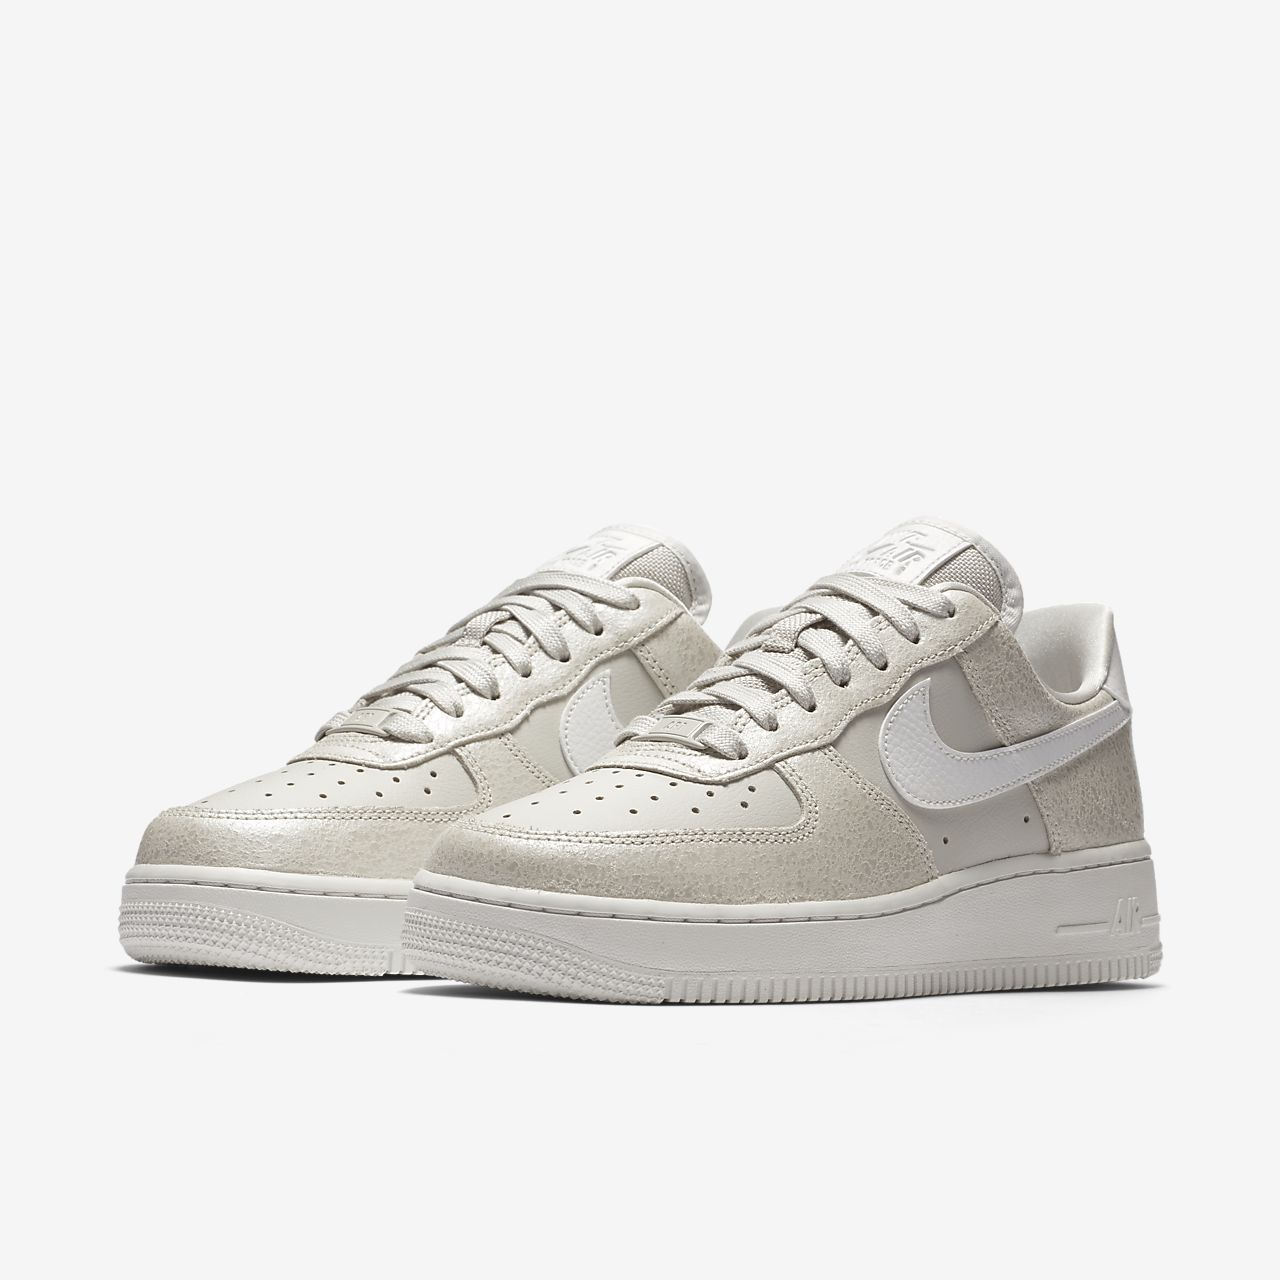 Nike Air Force 1 '07 Low Premium Lifestyle Shoes For Womens